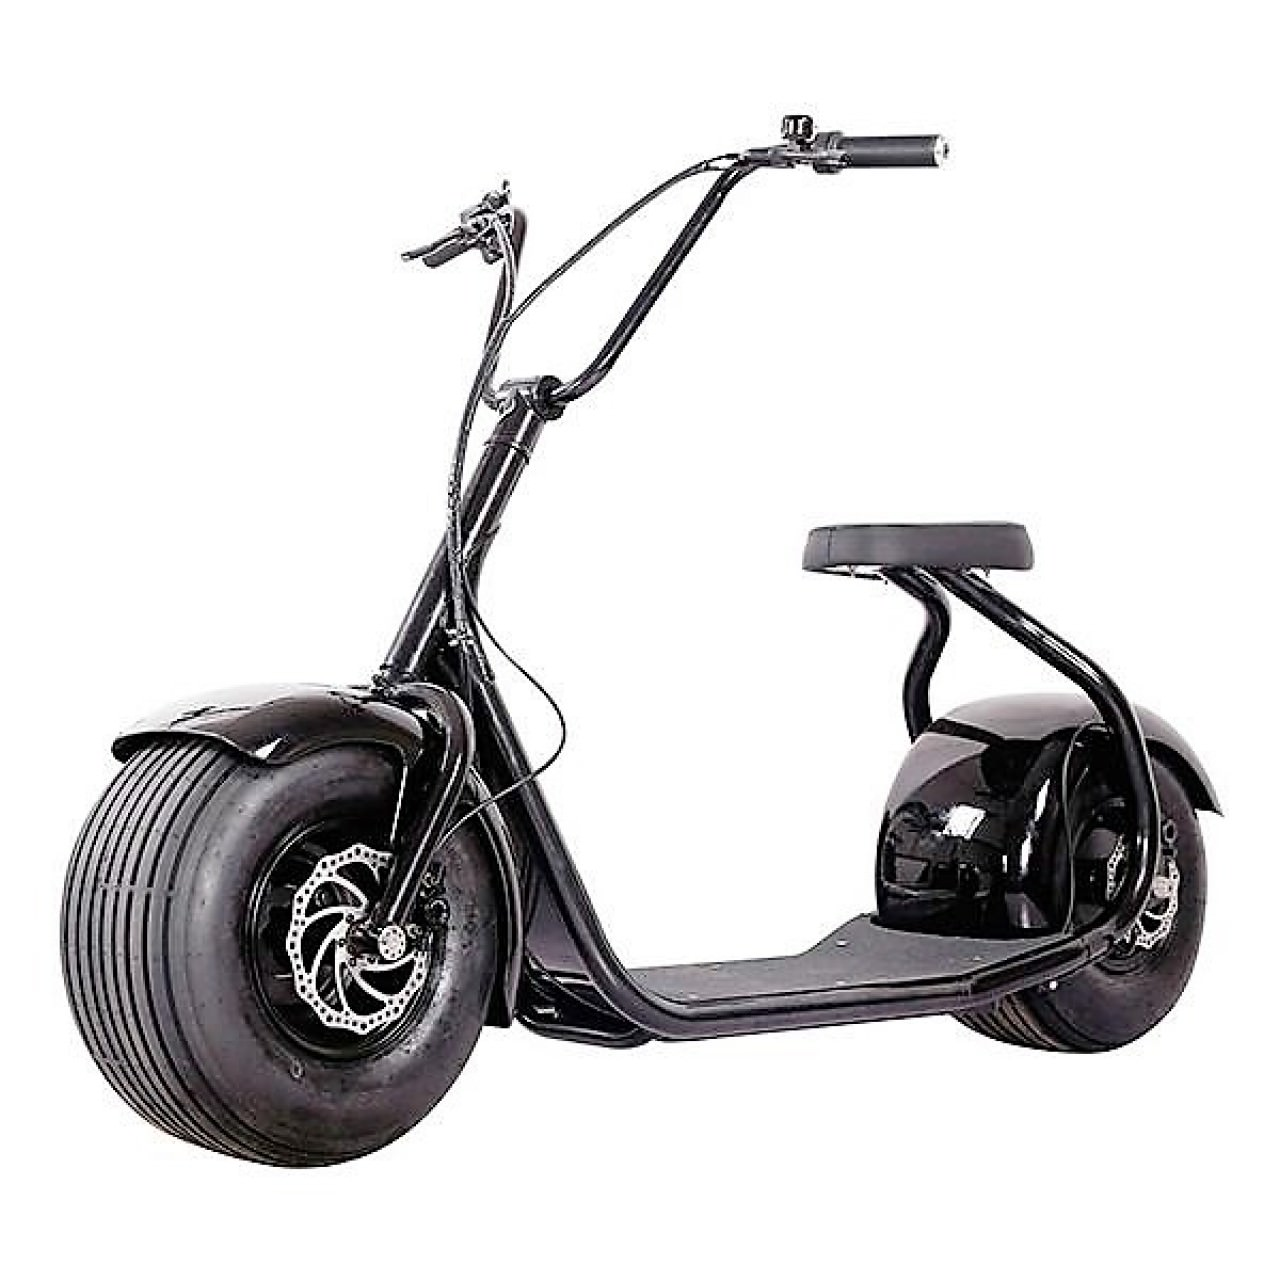 electric scooter harley hover dream 77 ood haynes service repair manual service manual repair for sony hvr-hd1000u